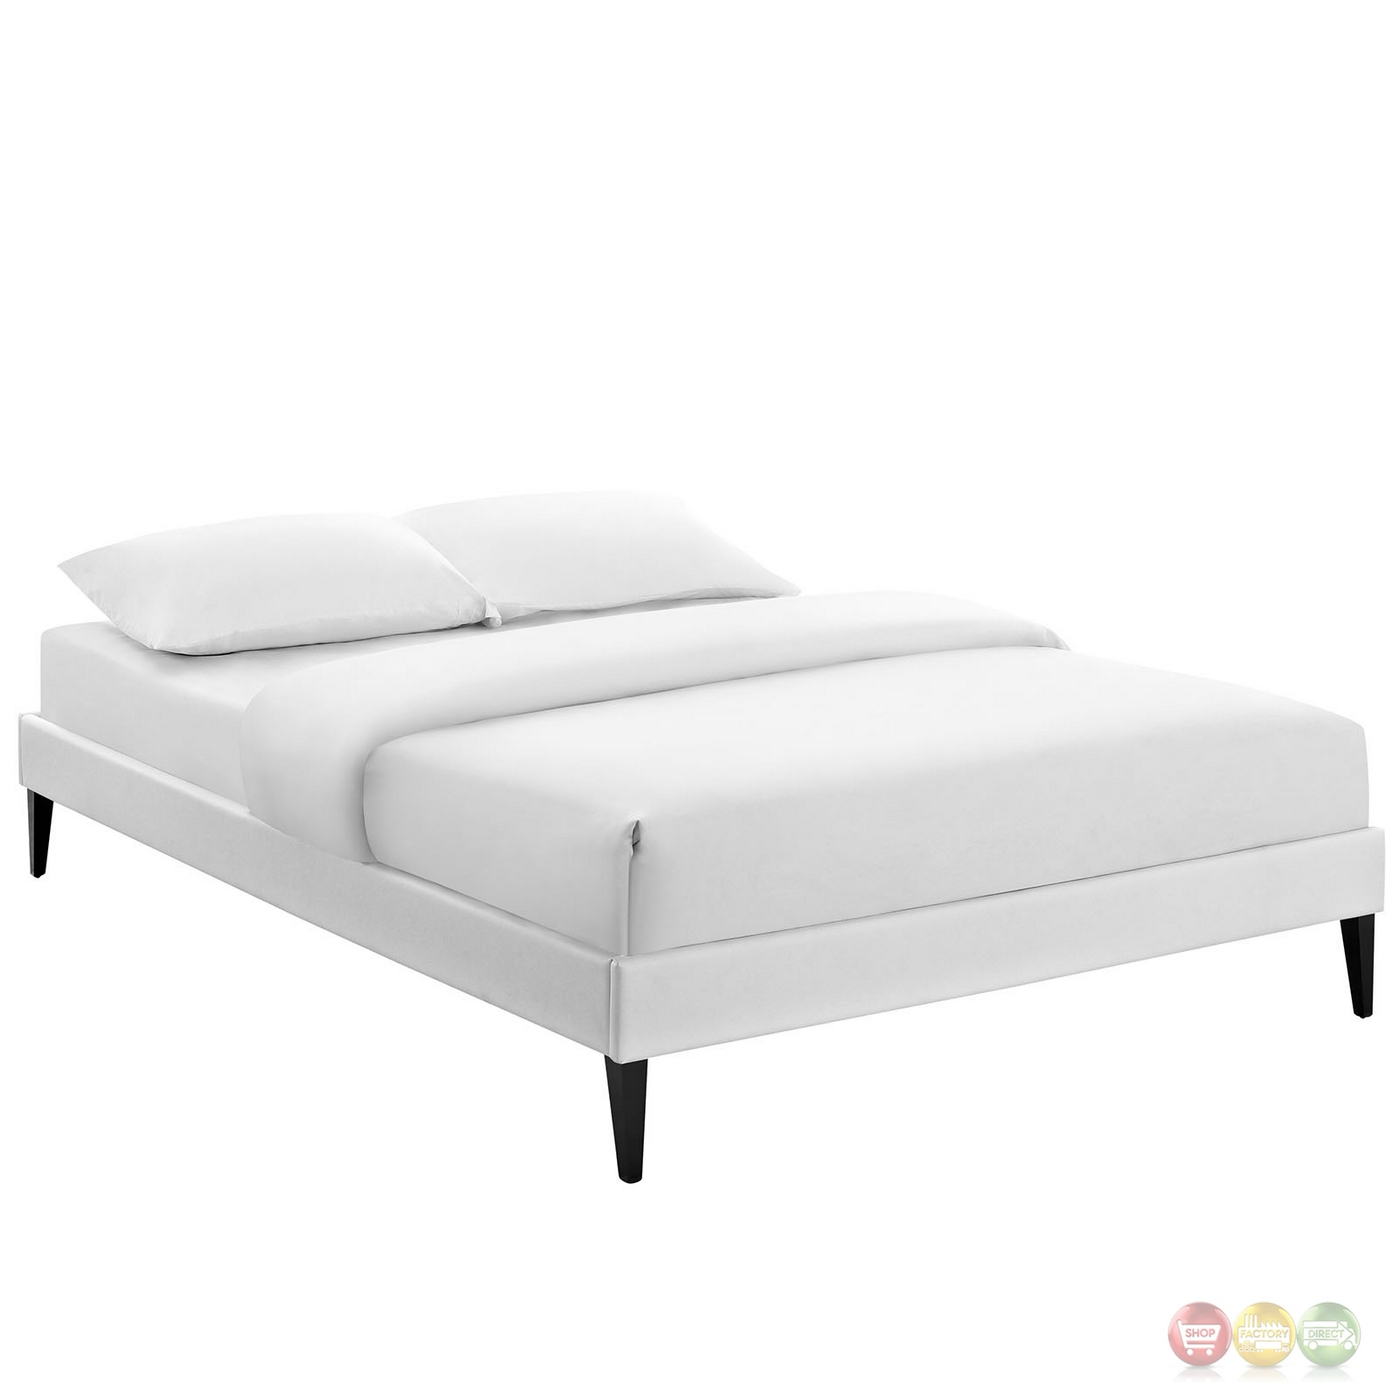 Sharon Modern King Vinyl Platform Bed Frame With Square